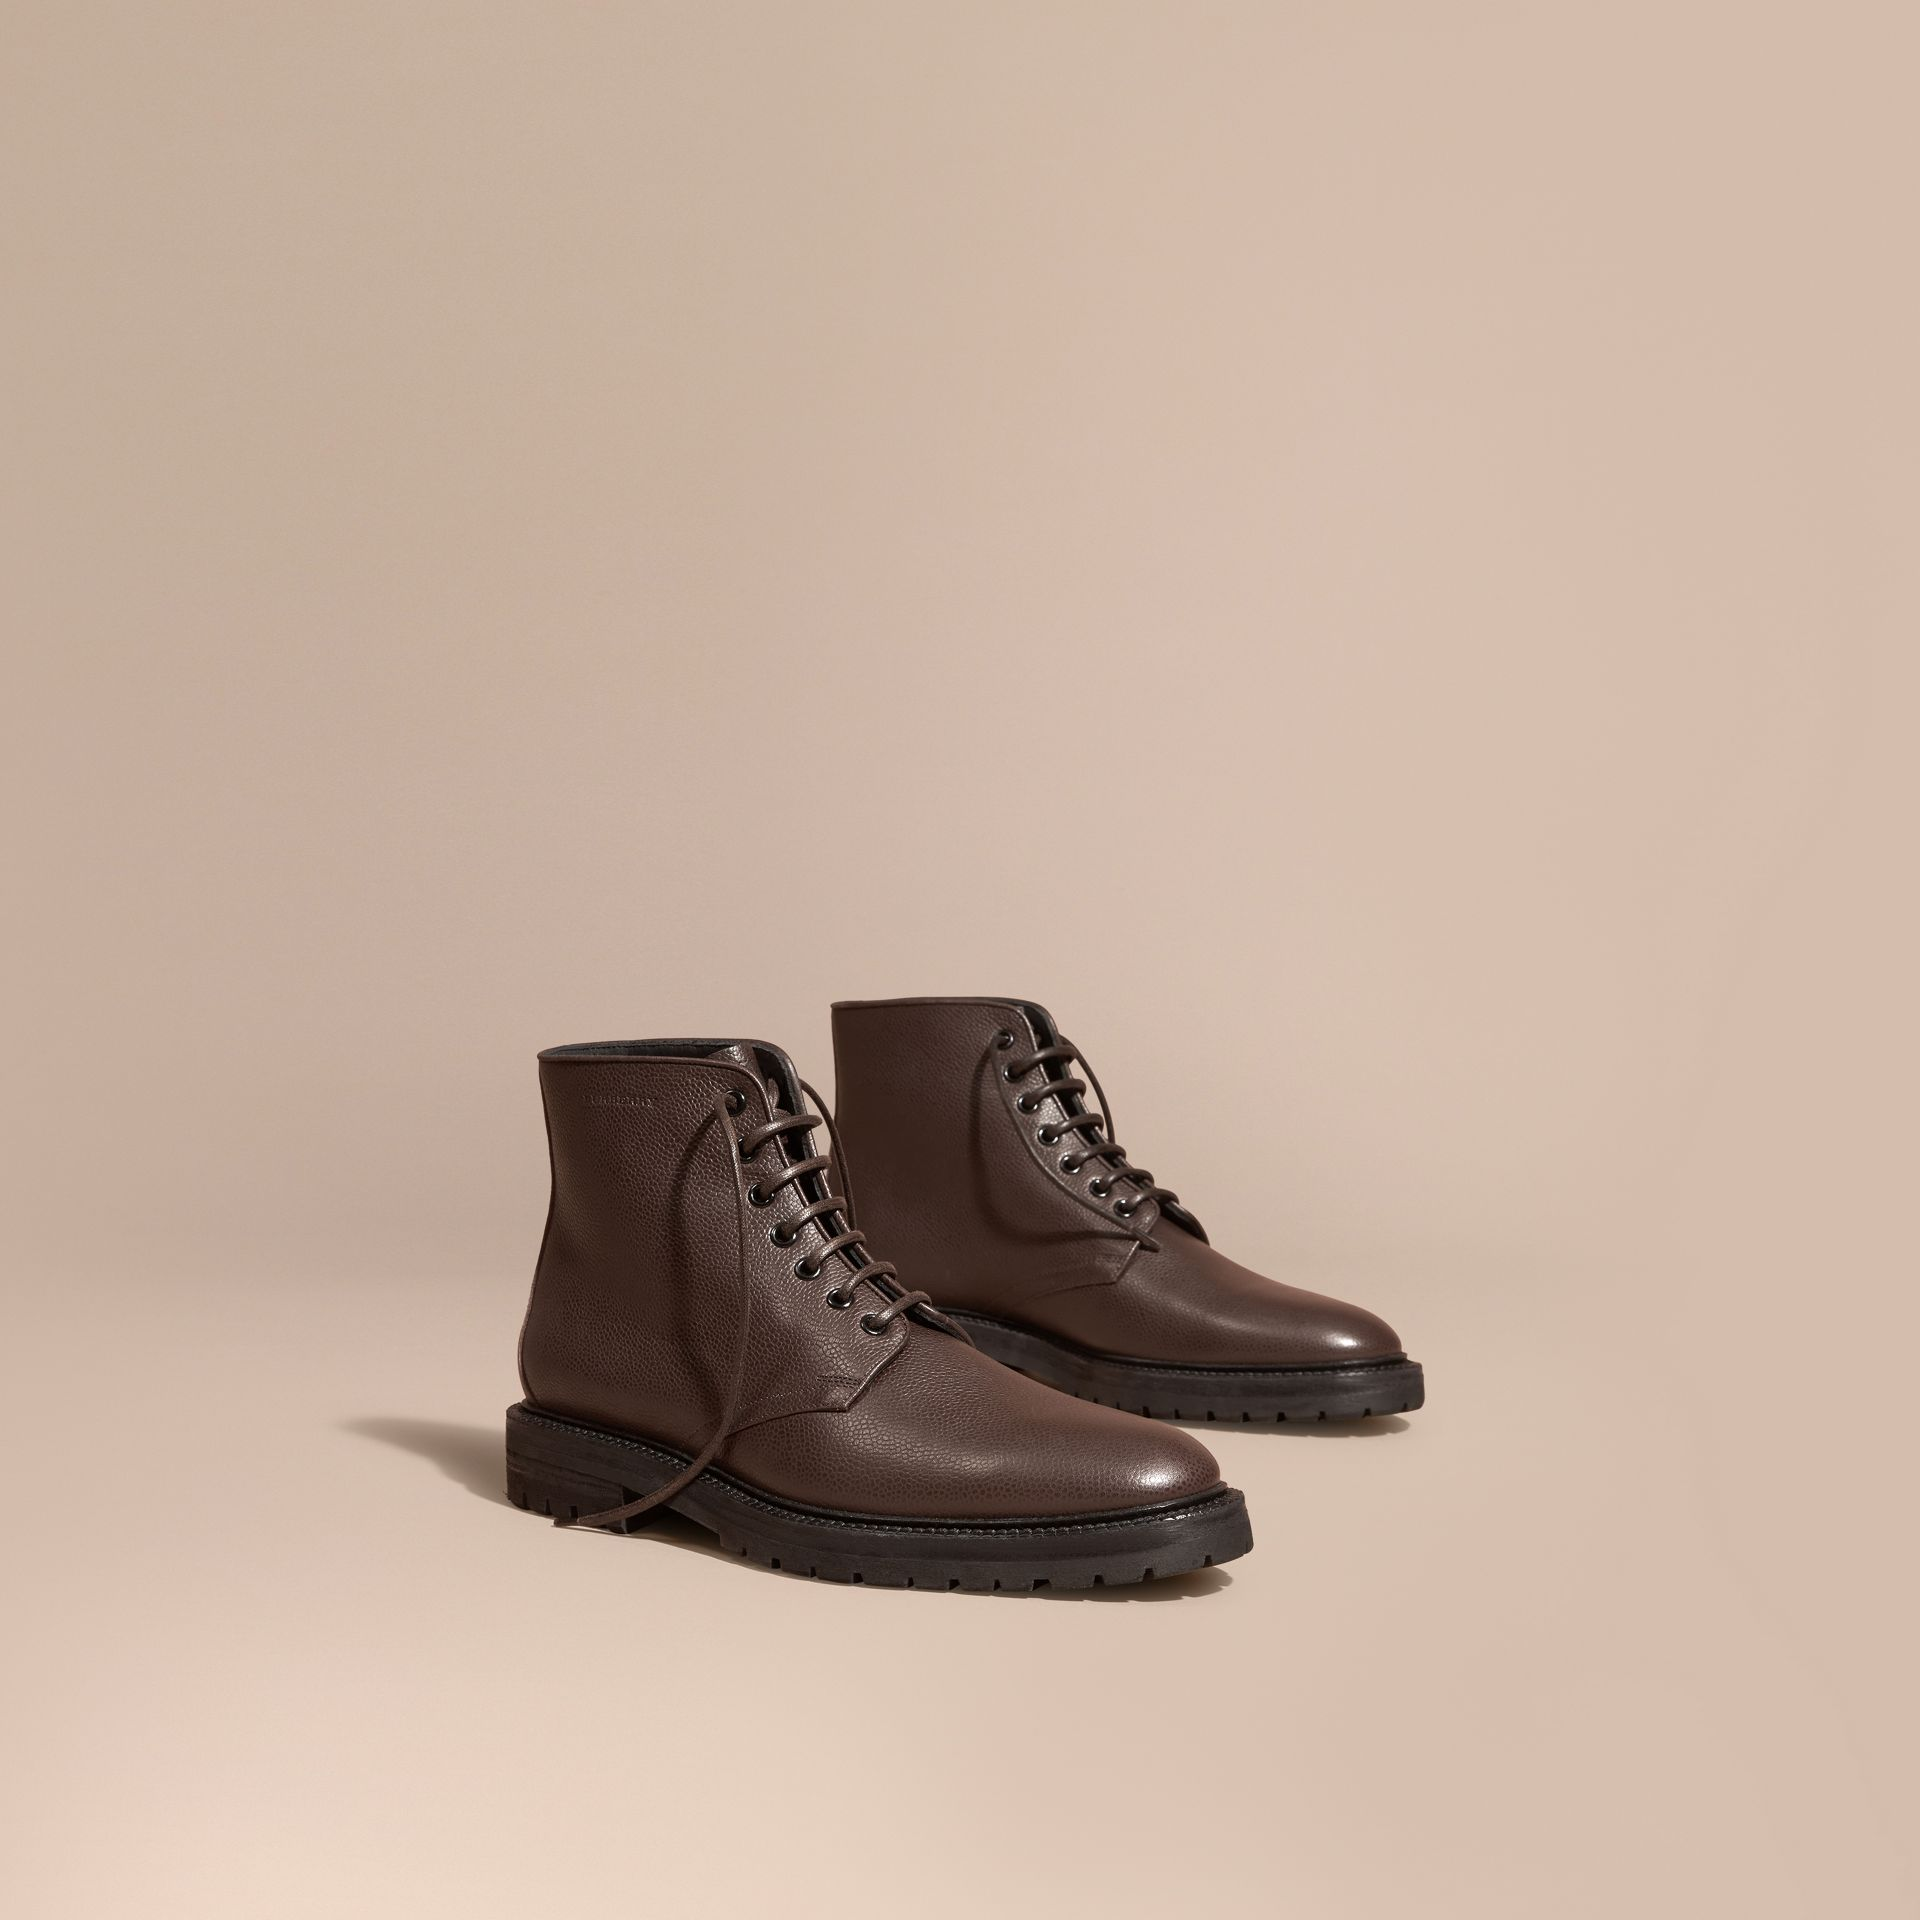 Chestnut Lace-up Grainy Leather Boots Chestnut - gallery image 1